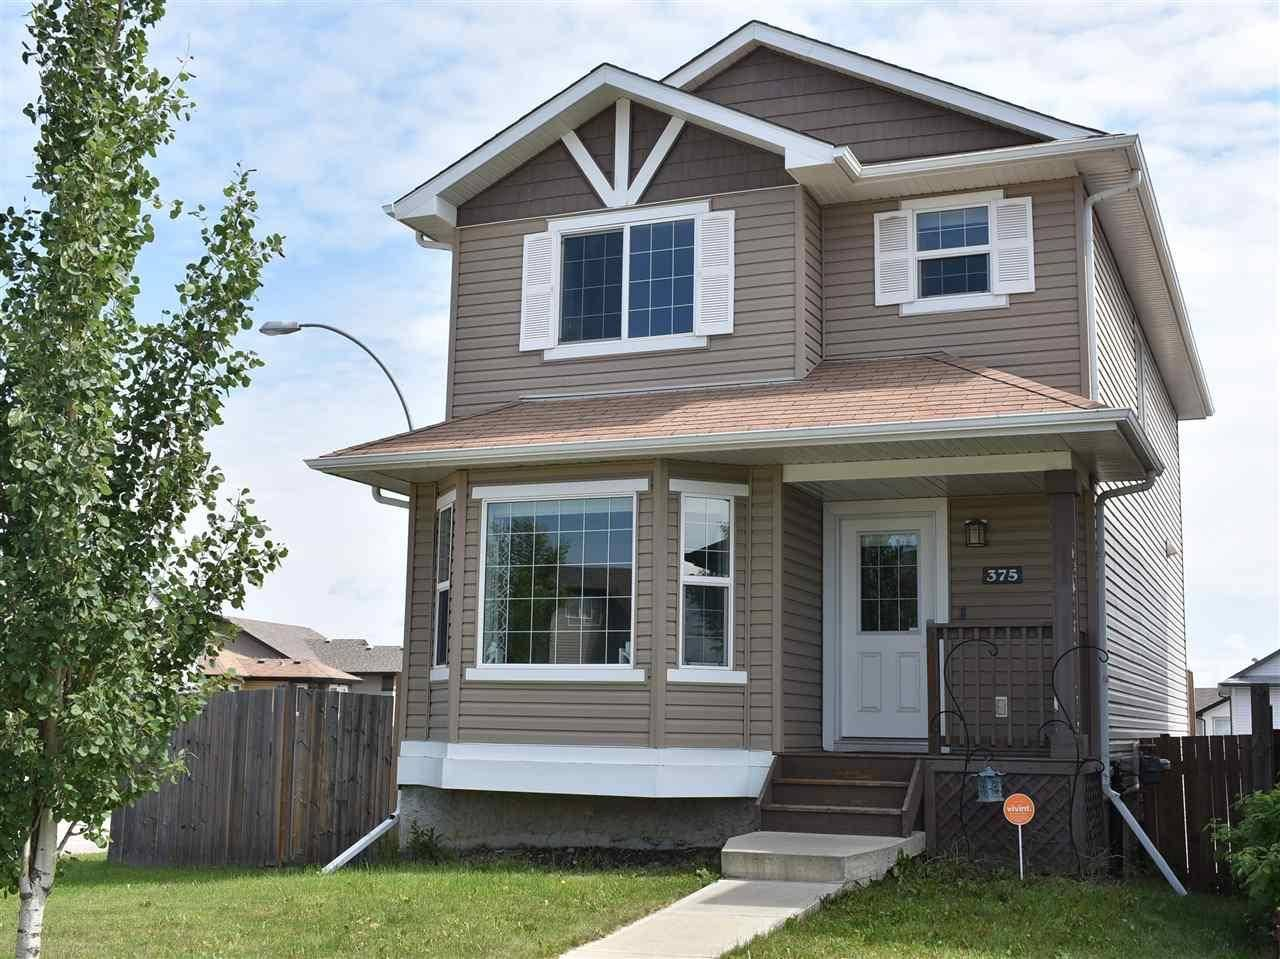 House for sale at 375 Brintnell Blvd Nw Edmonton Alberta - MLS: E4163859